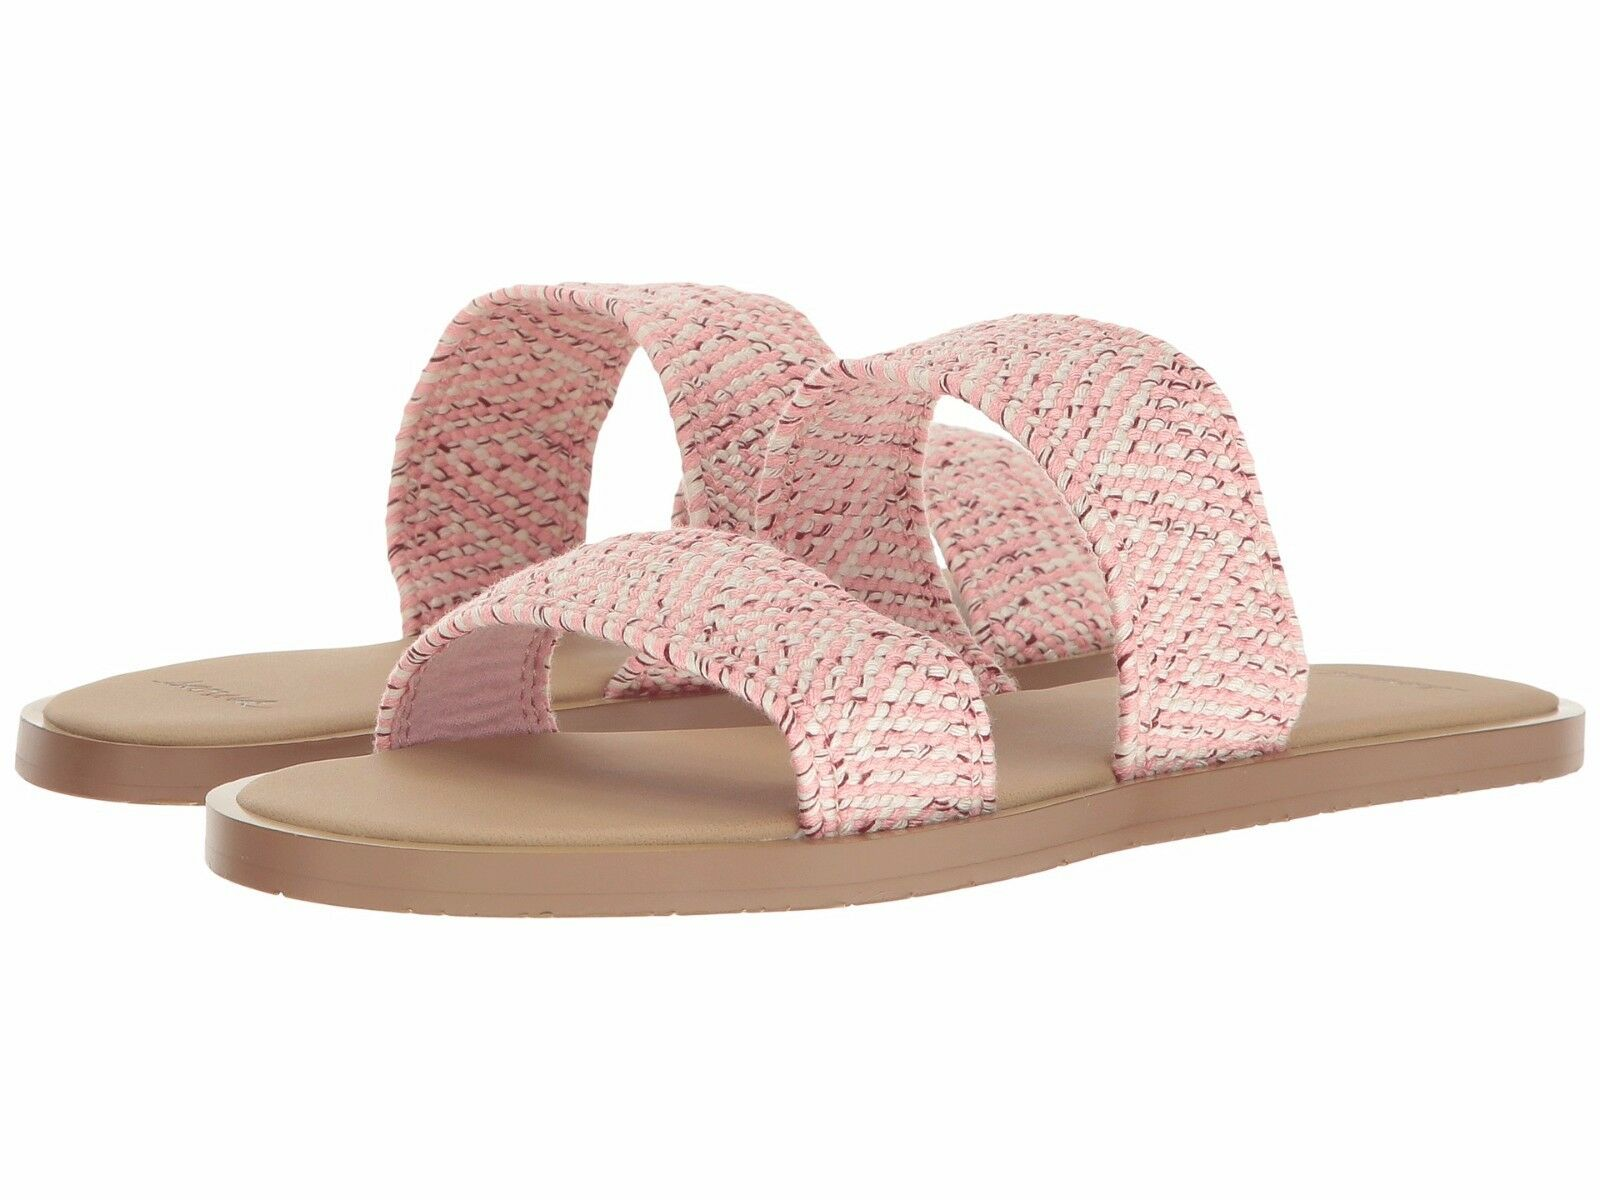 Sanuk Womens Yoga Gora Gora TX Slide Sandal Strawberry Cream Size 6 S4Jwg